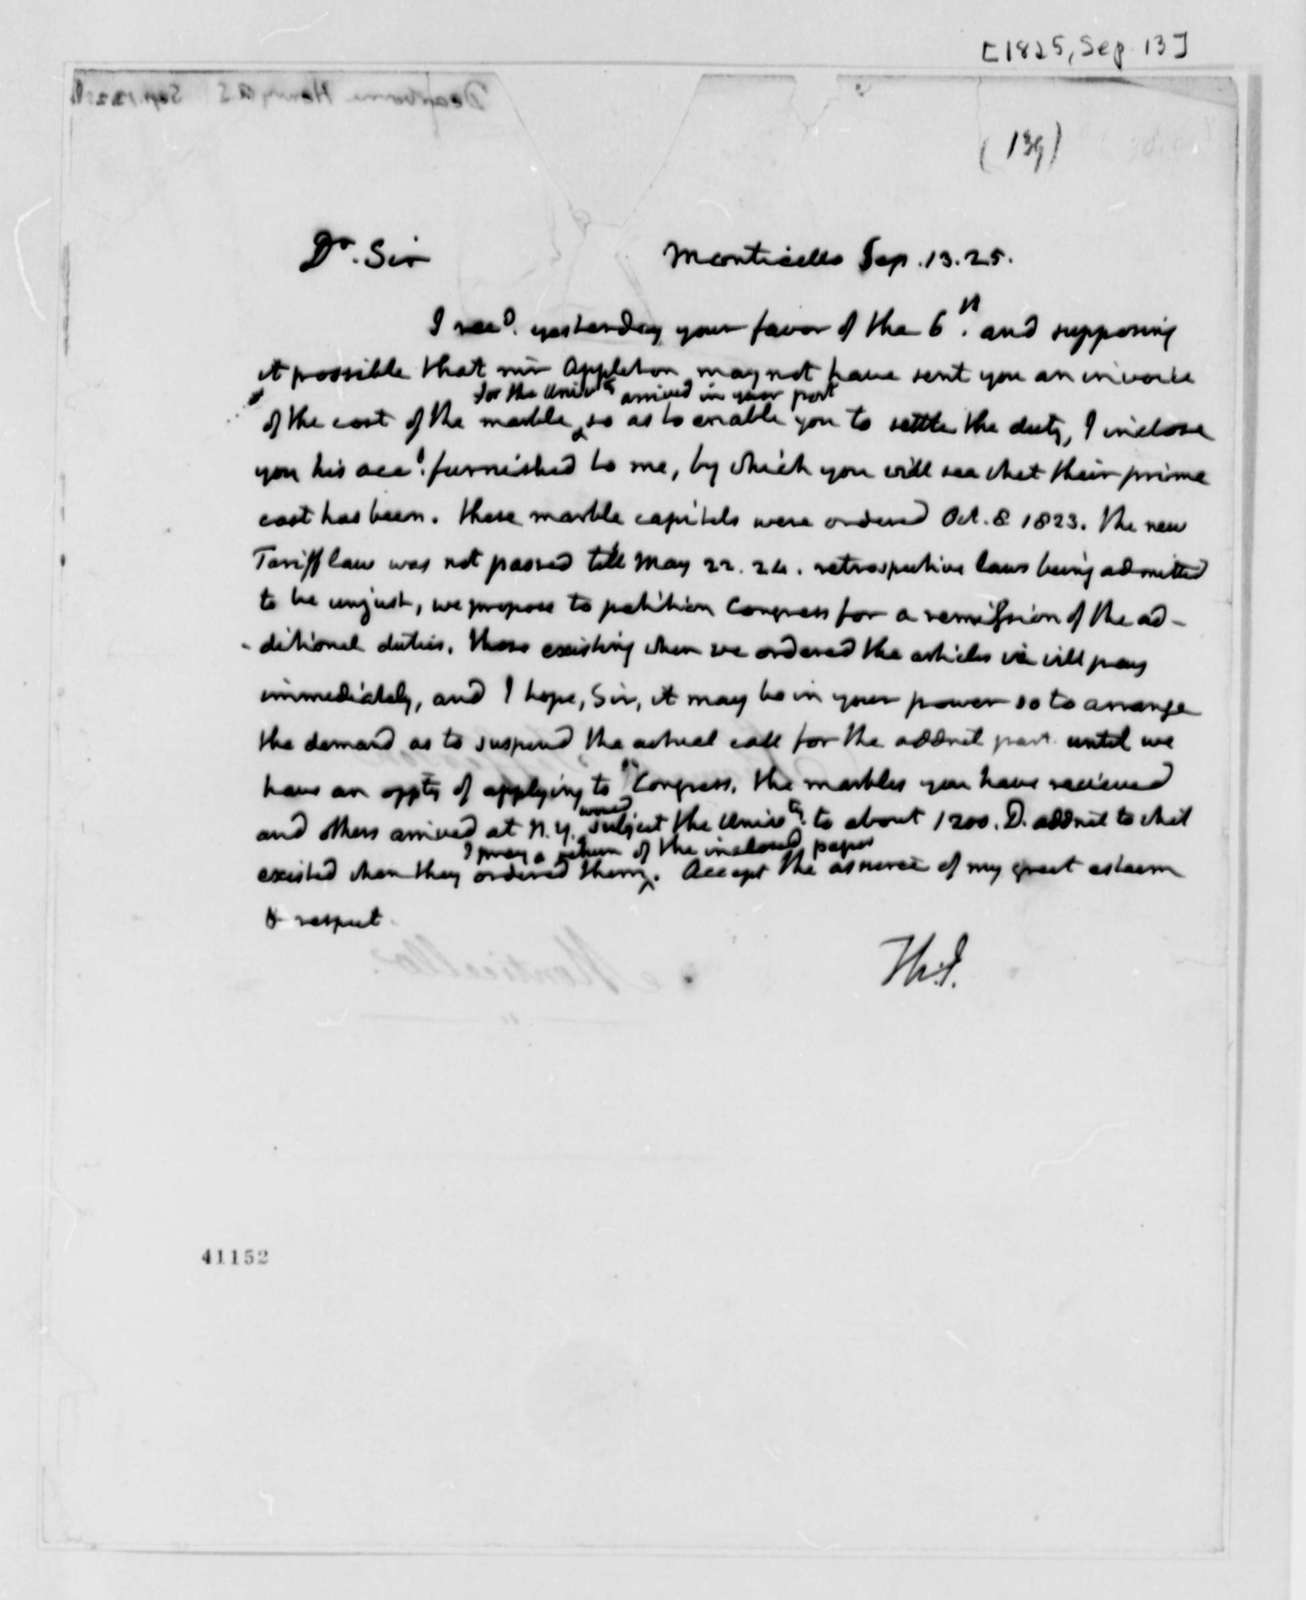 Thomas Jefferson to Henry A. S. Dearborn, September 13, 1825